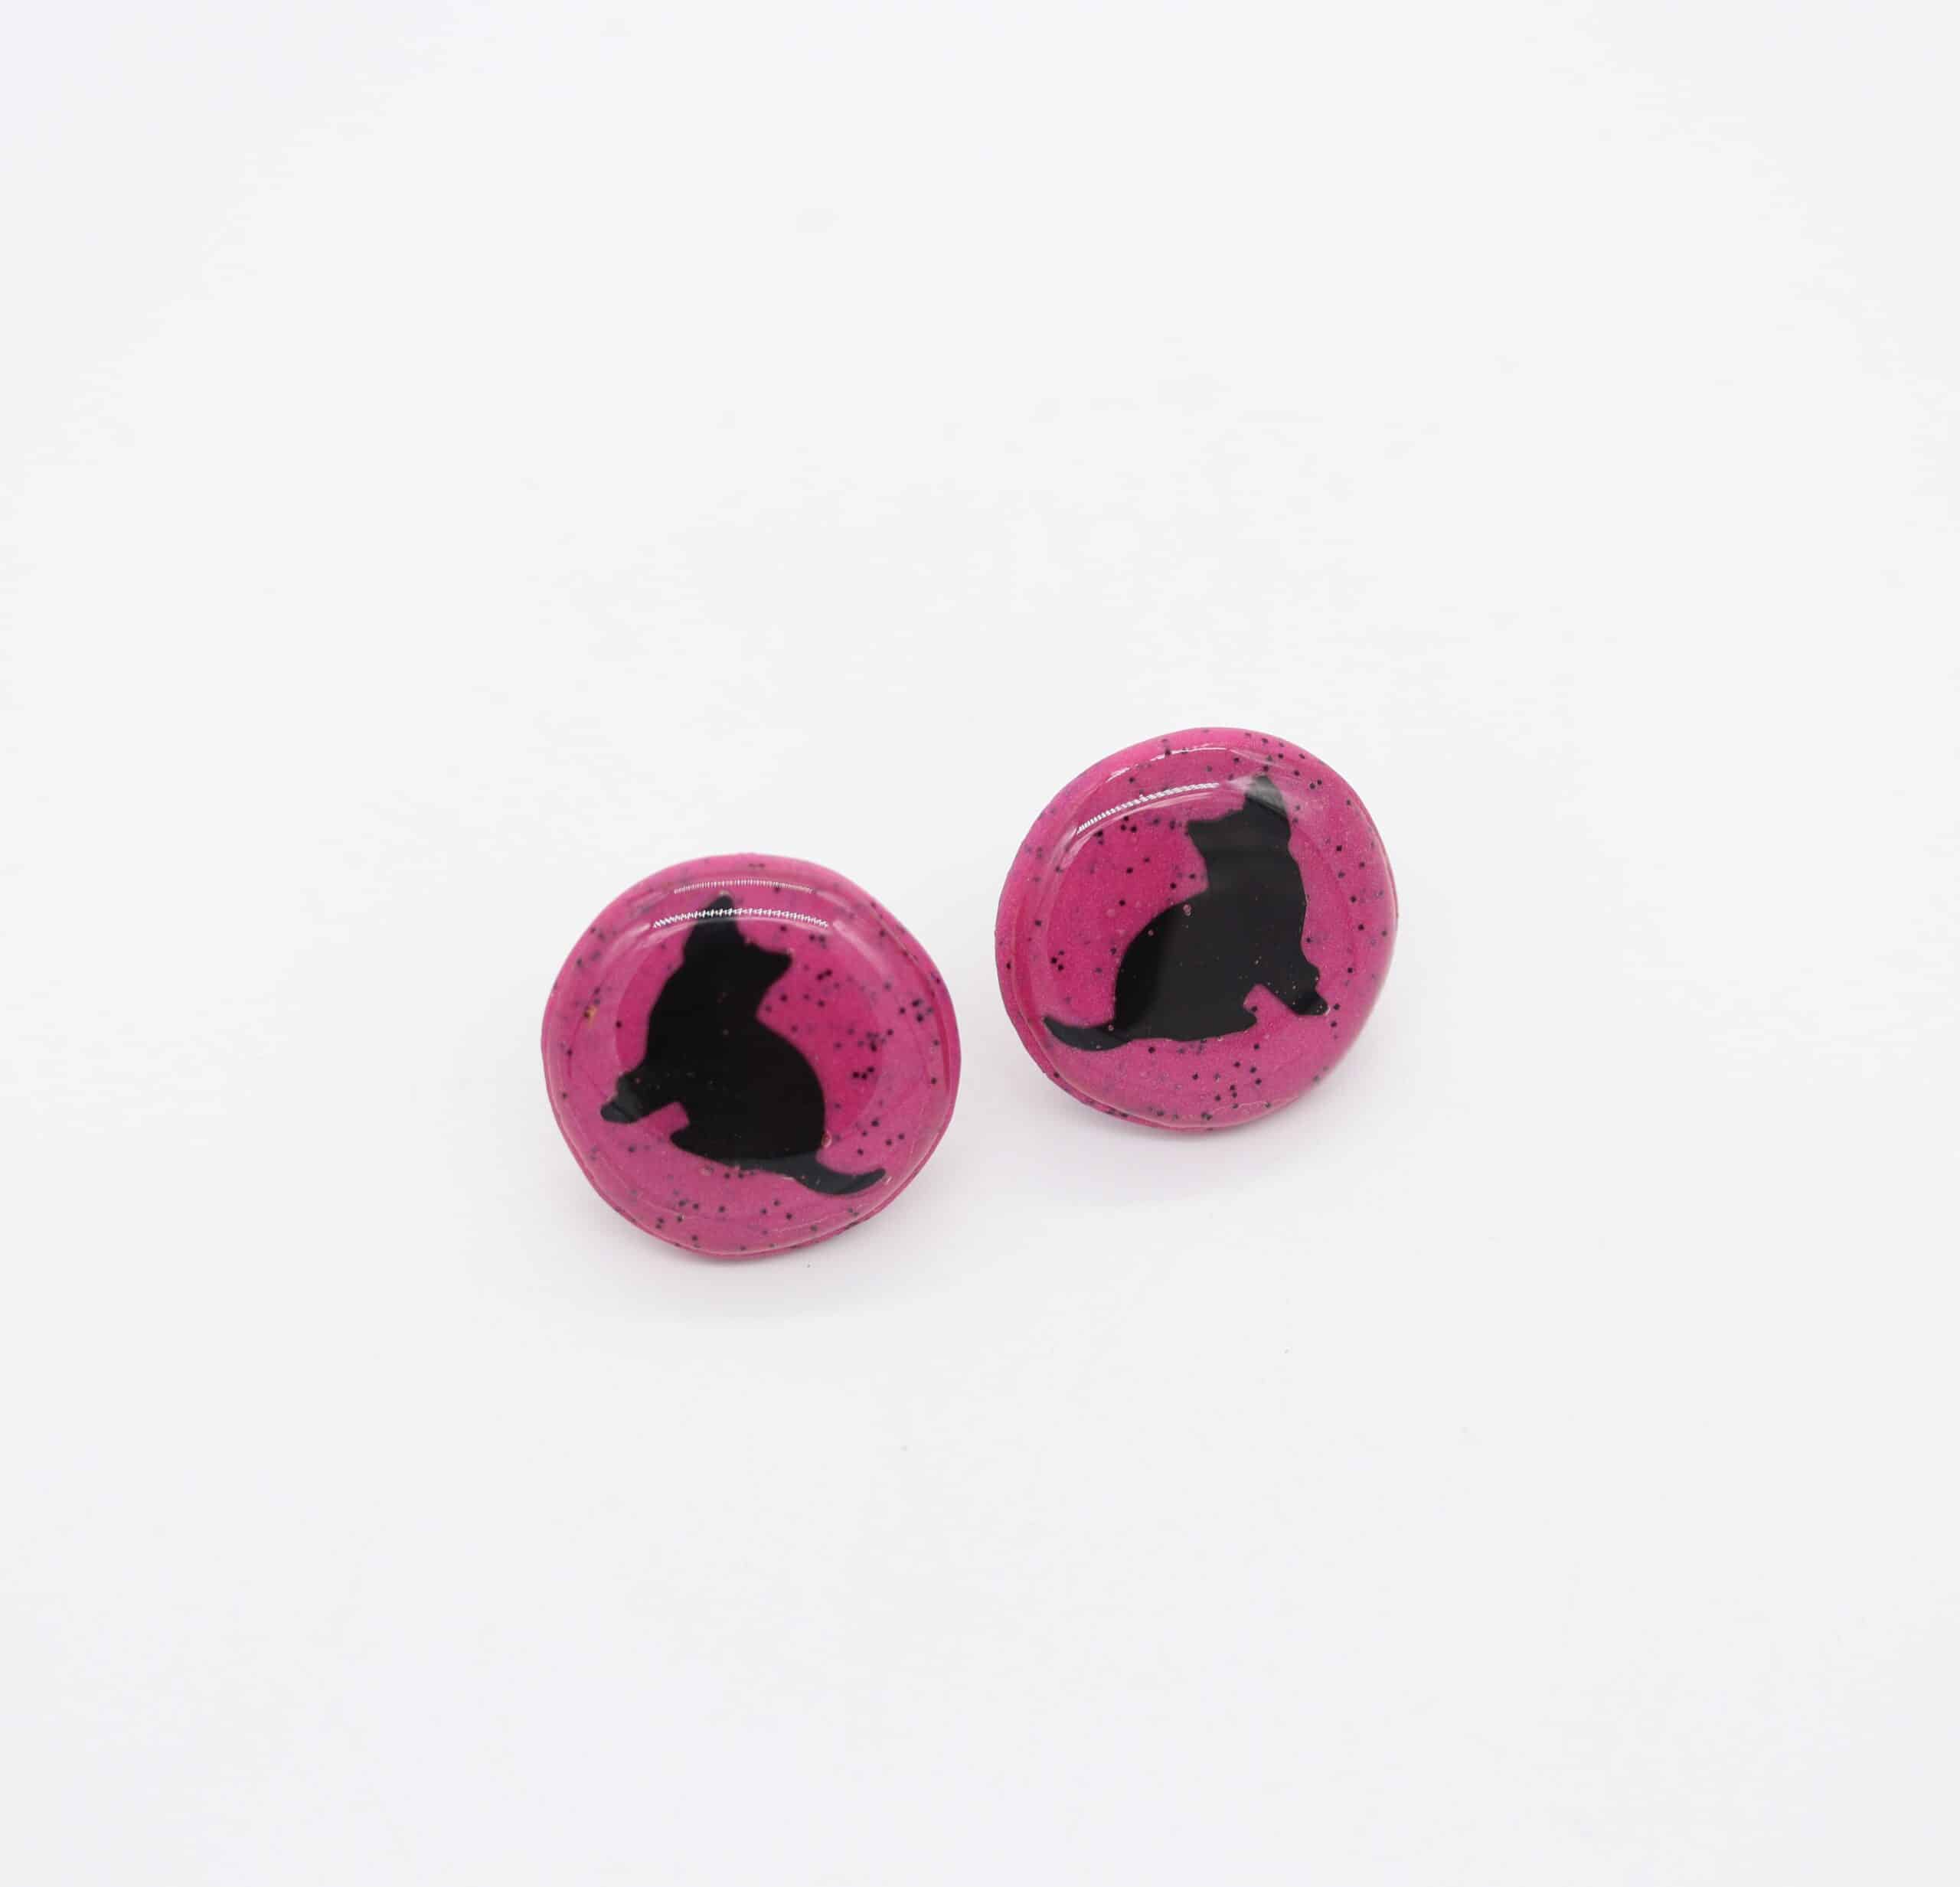 Black Cat Studs By CO'B By Design